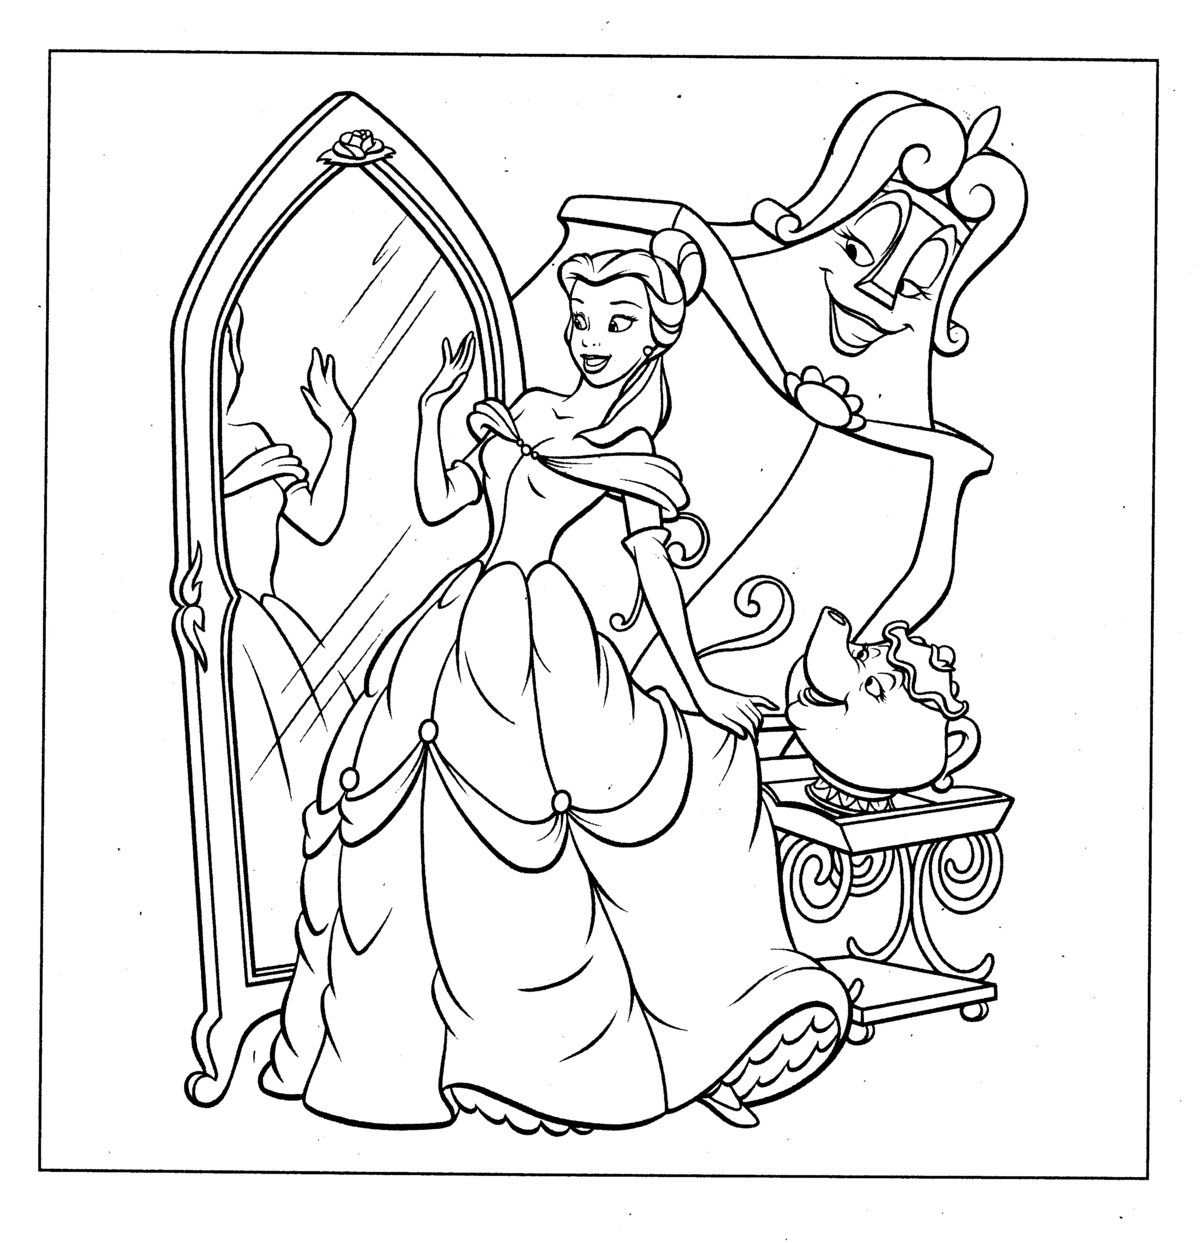 kids disney princess coloring pages - photo#40